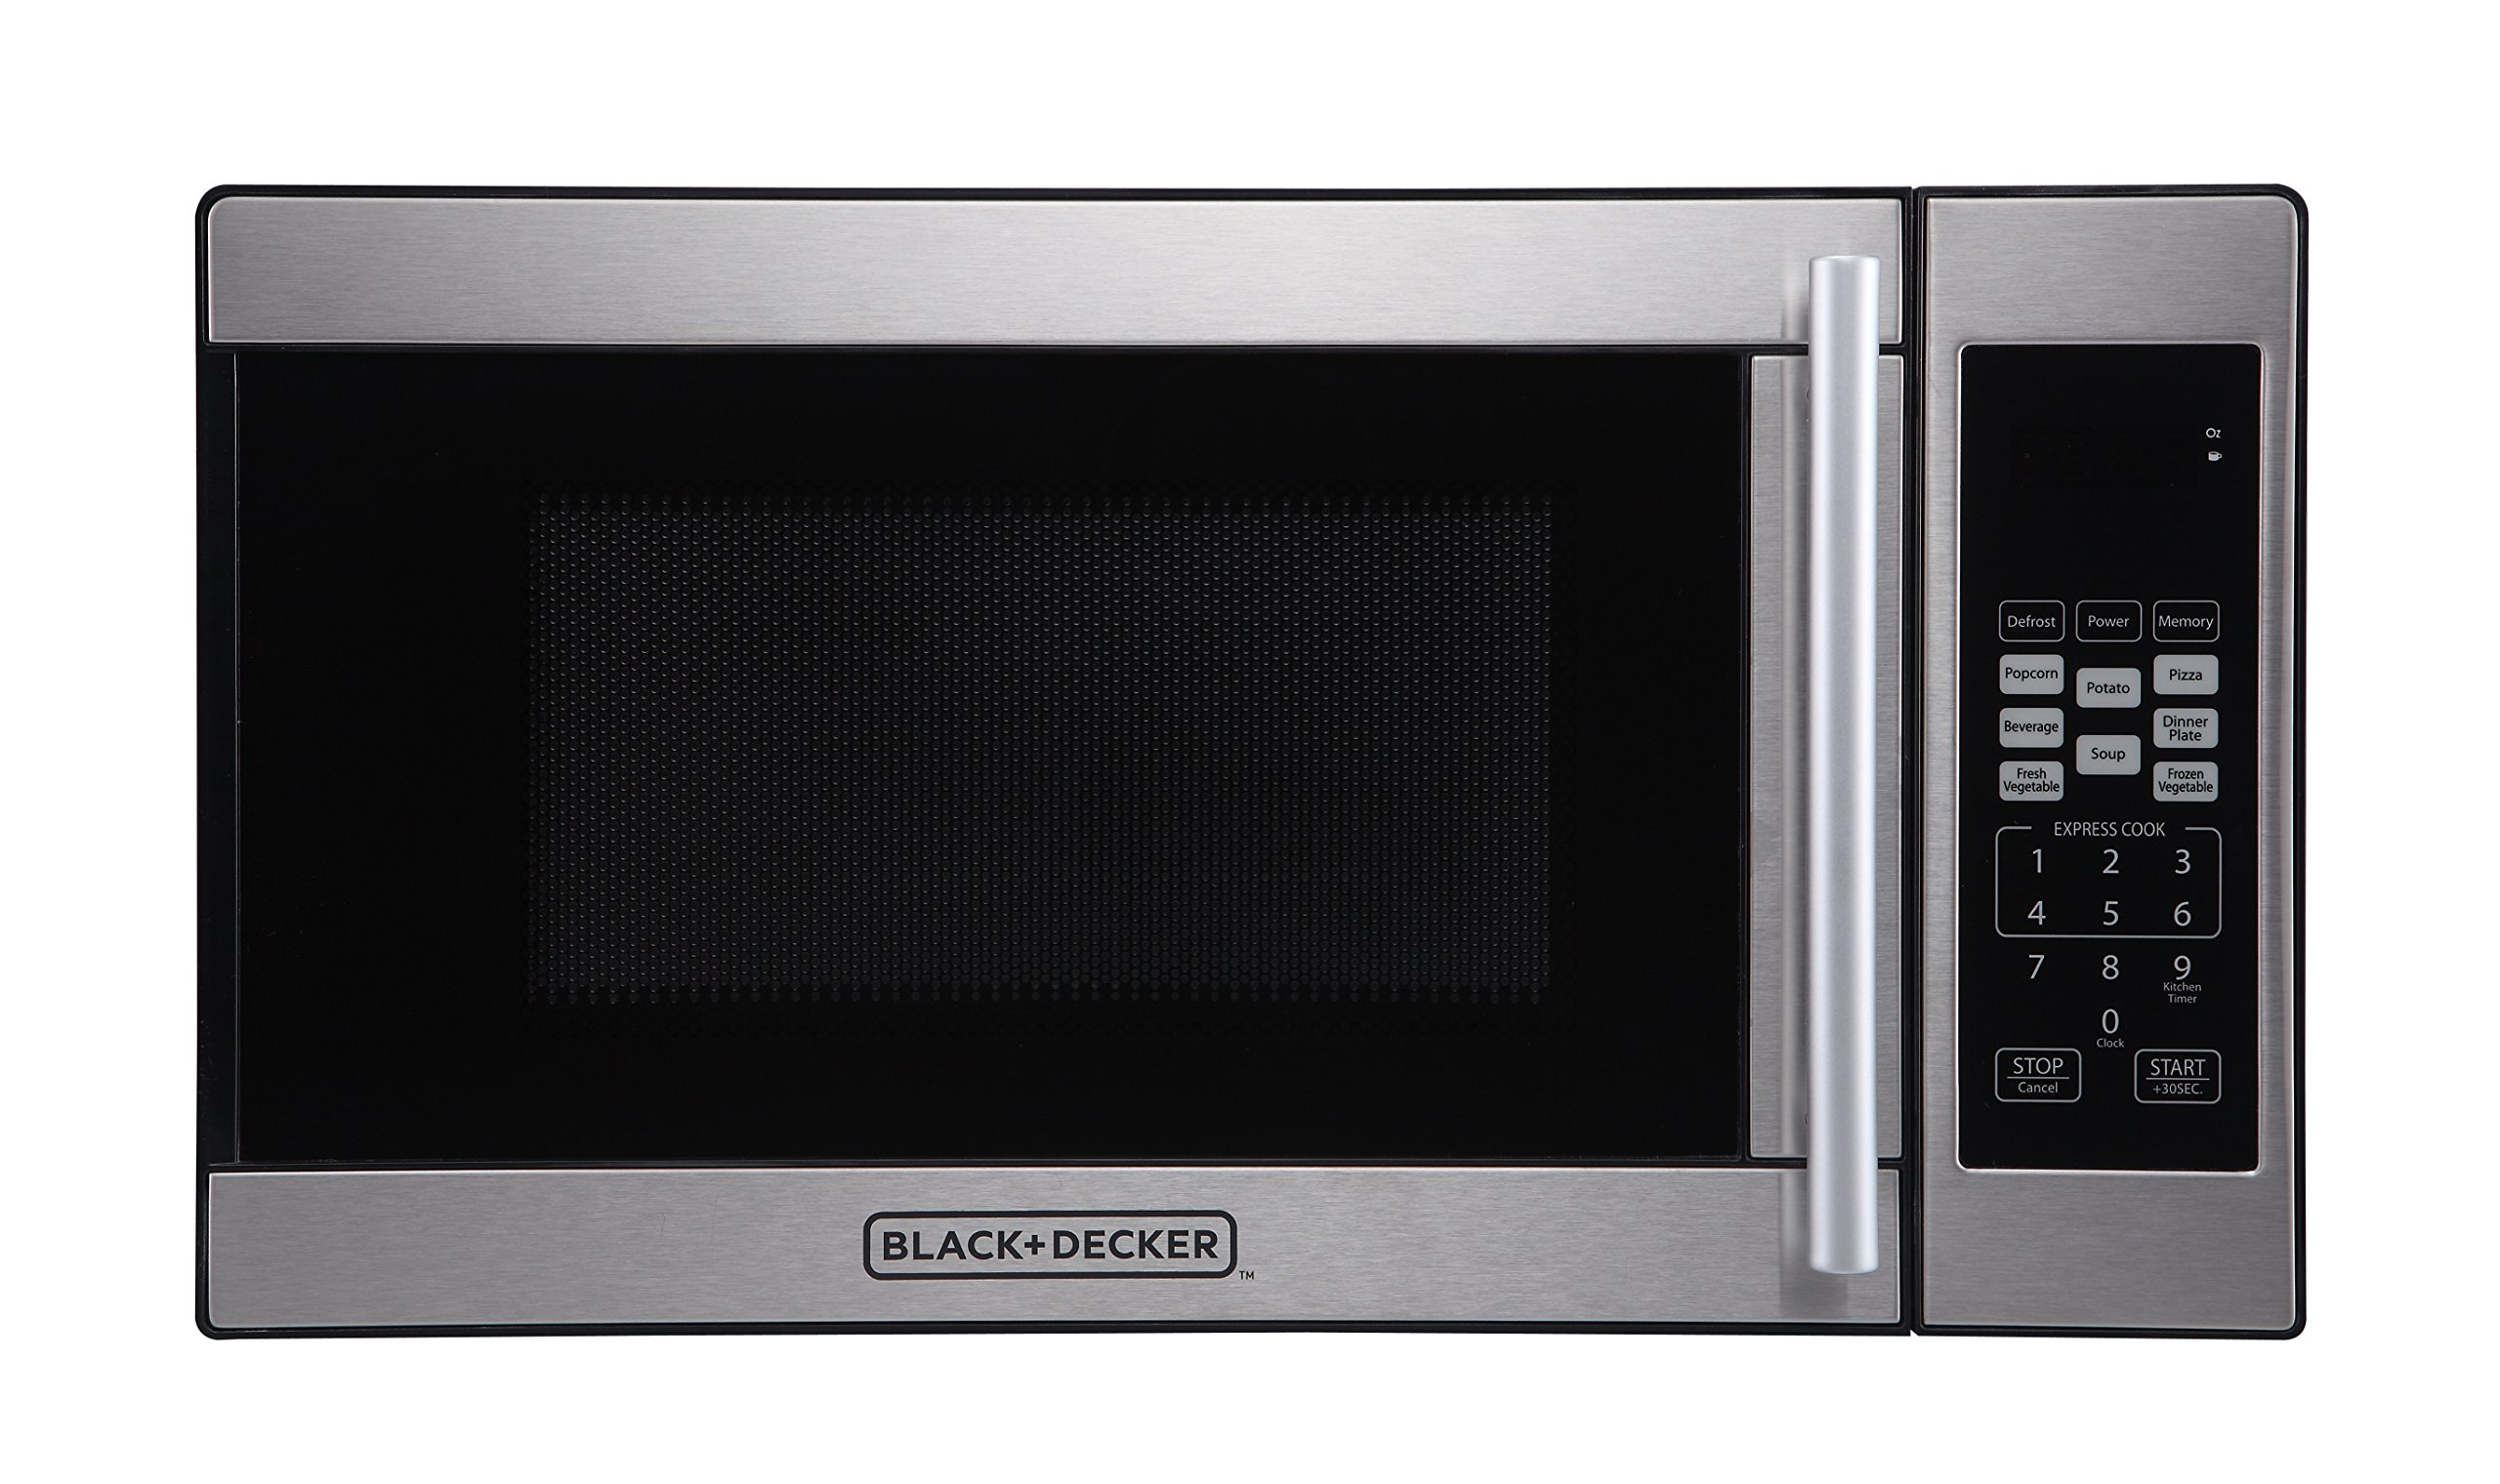 Black + Decker 0.7 Cubic Foot 700 Watt Stainless Steel Microwave with Turntable